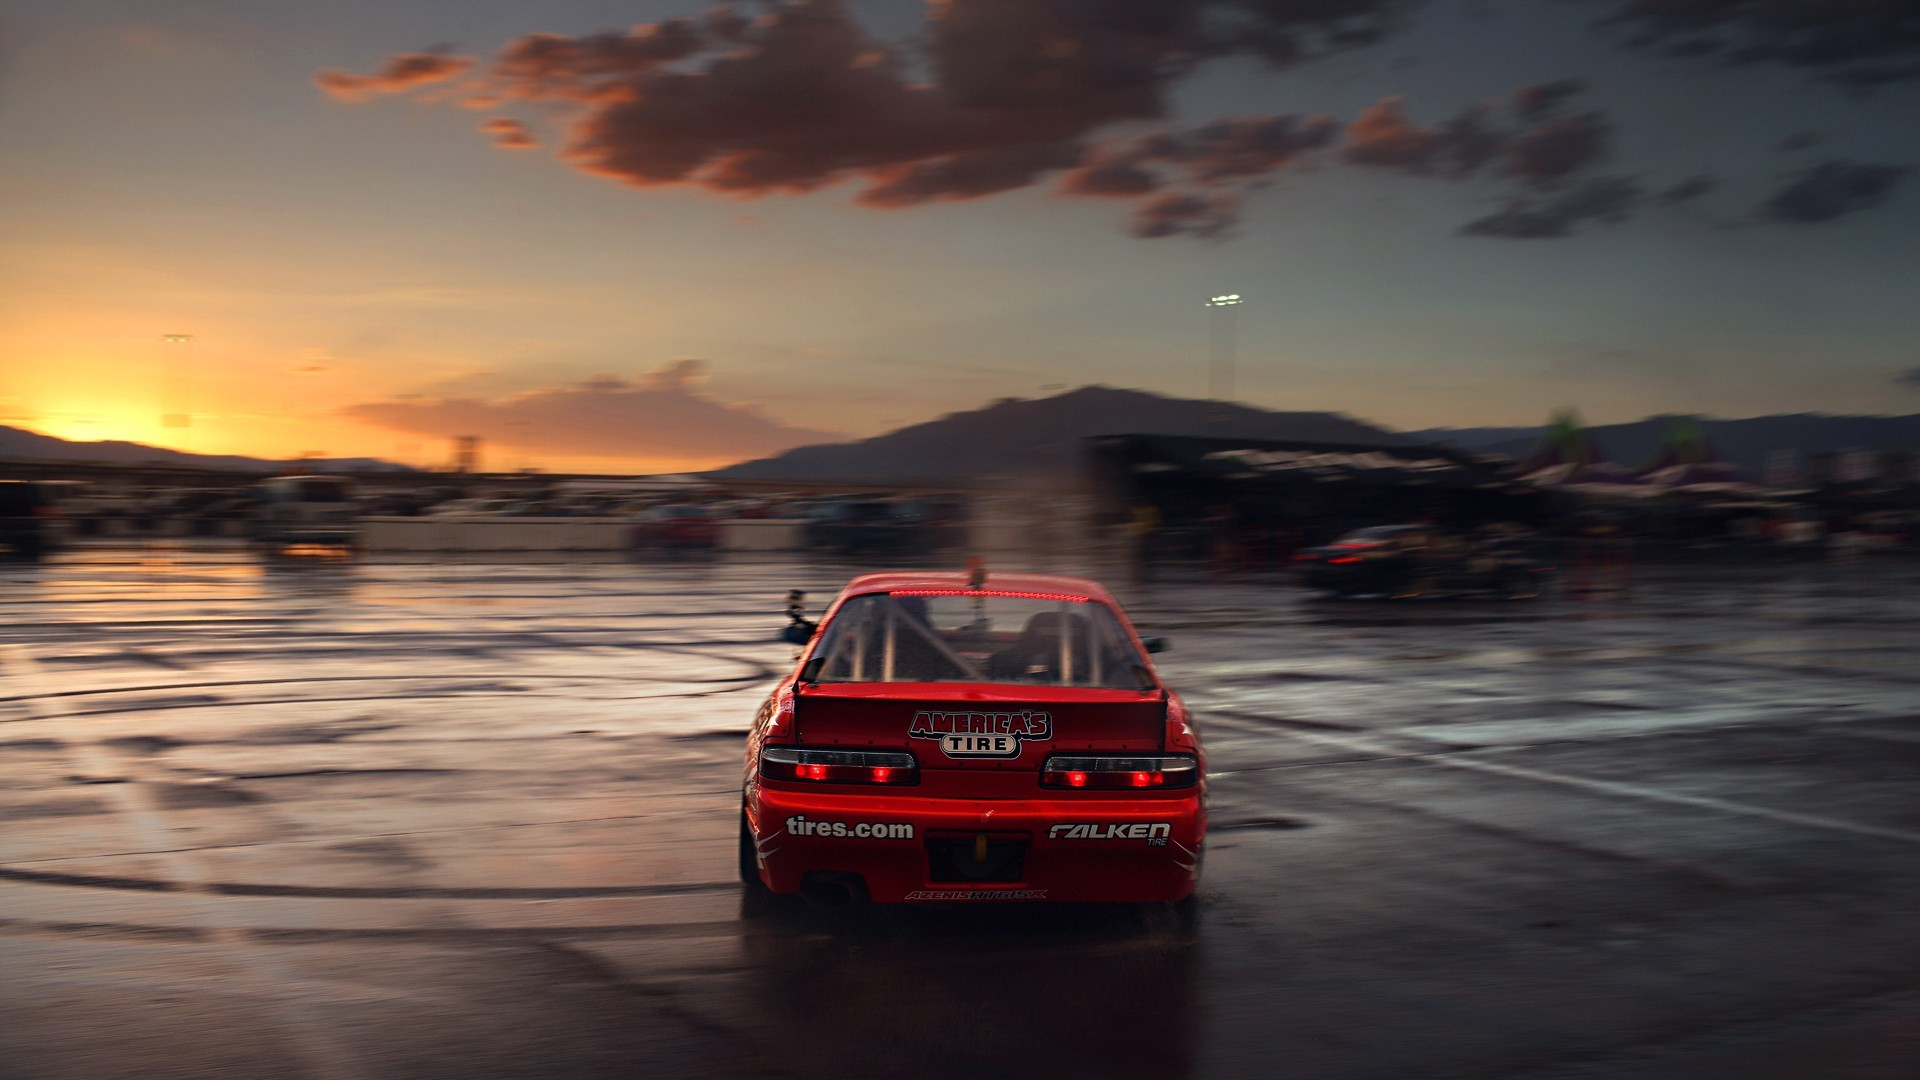 Drift hd cars 4k wallpapers images backgrounds photos - Wallpaper hd 4k car ...